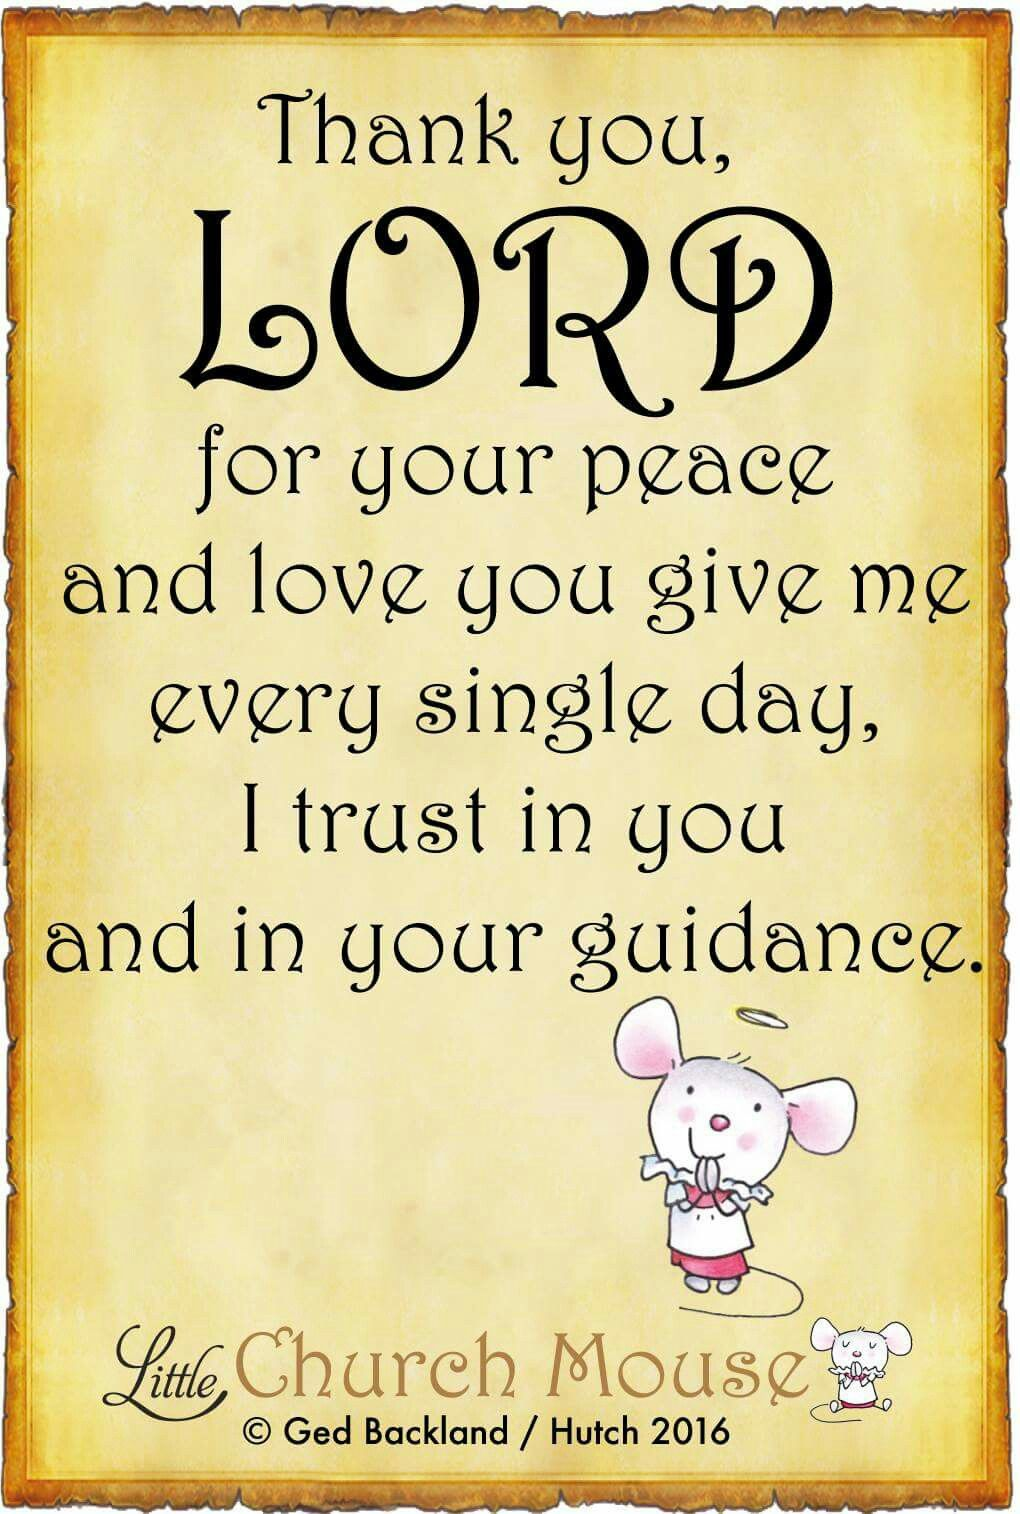 Thank you, Lord for your peace and love you give me every single day, I  trust in you and your guidance. Amen...Little Church Mouse 6 May 2016 ♡✞♡